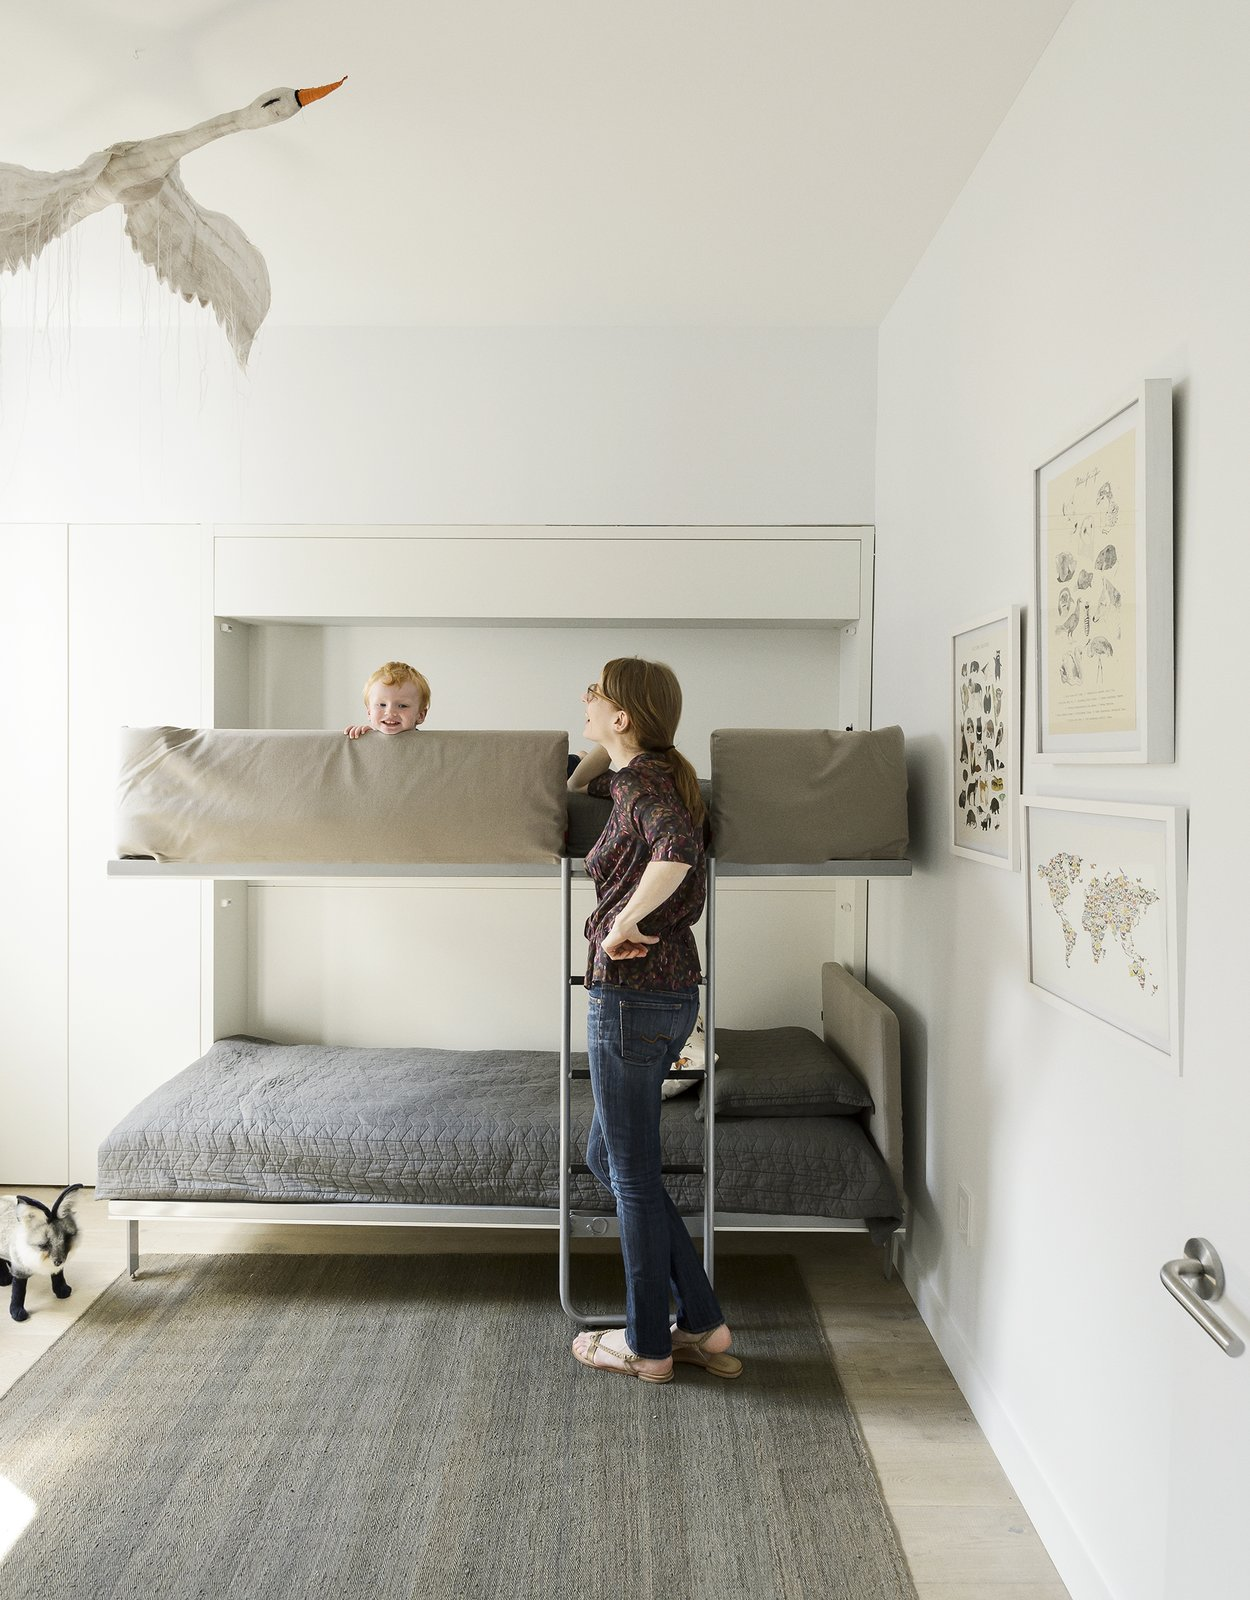 Kids Room, Bedroom Room Type, Bunks, Light Hardwood Floor, and Rug Floor  Photo 1 of 8 in 7 Ways to Child-Proof Your Home Without Forgoing Style from Making Room for Baby  (And You)